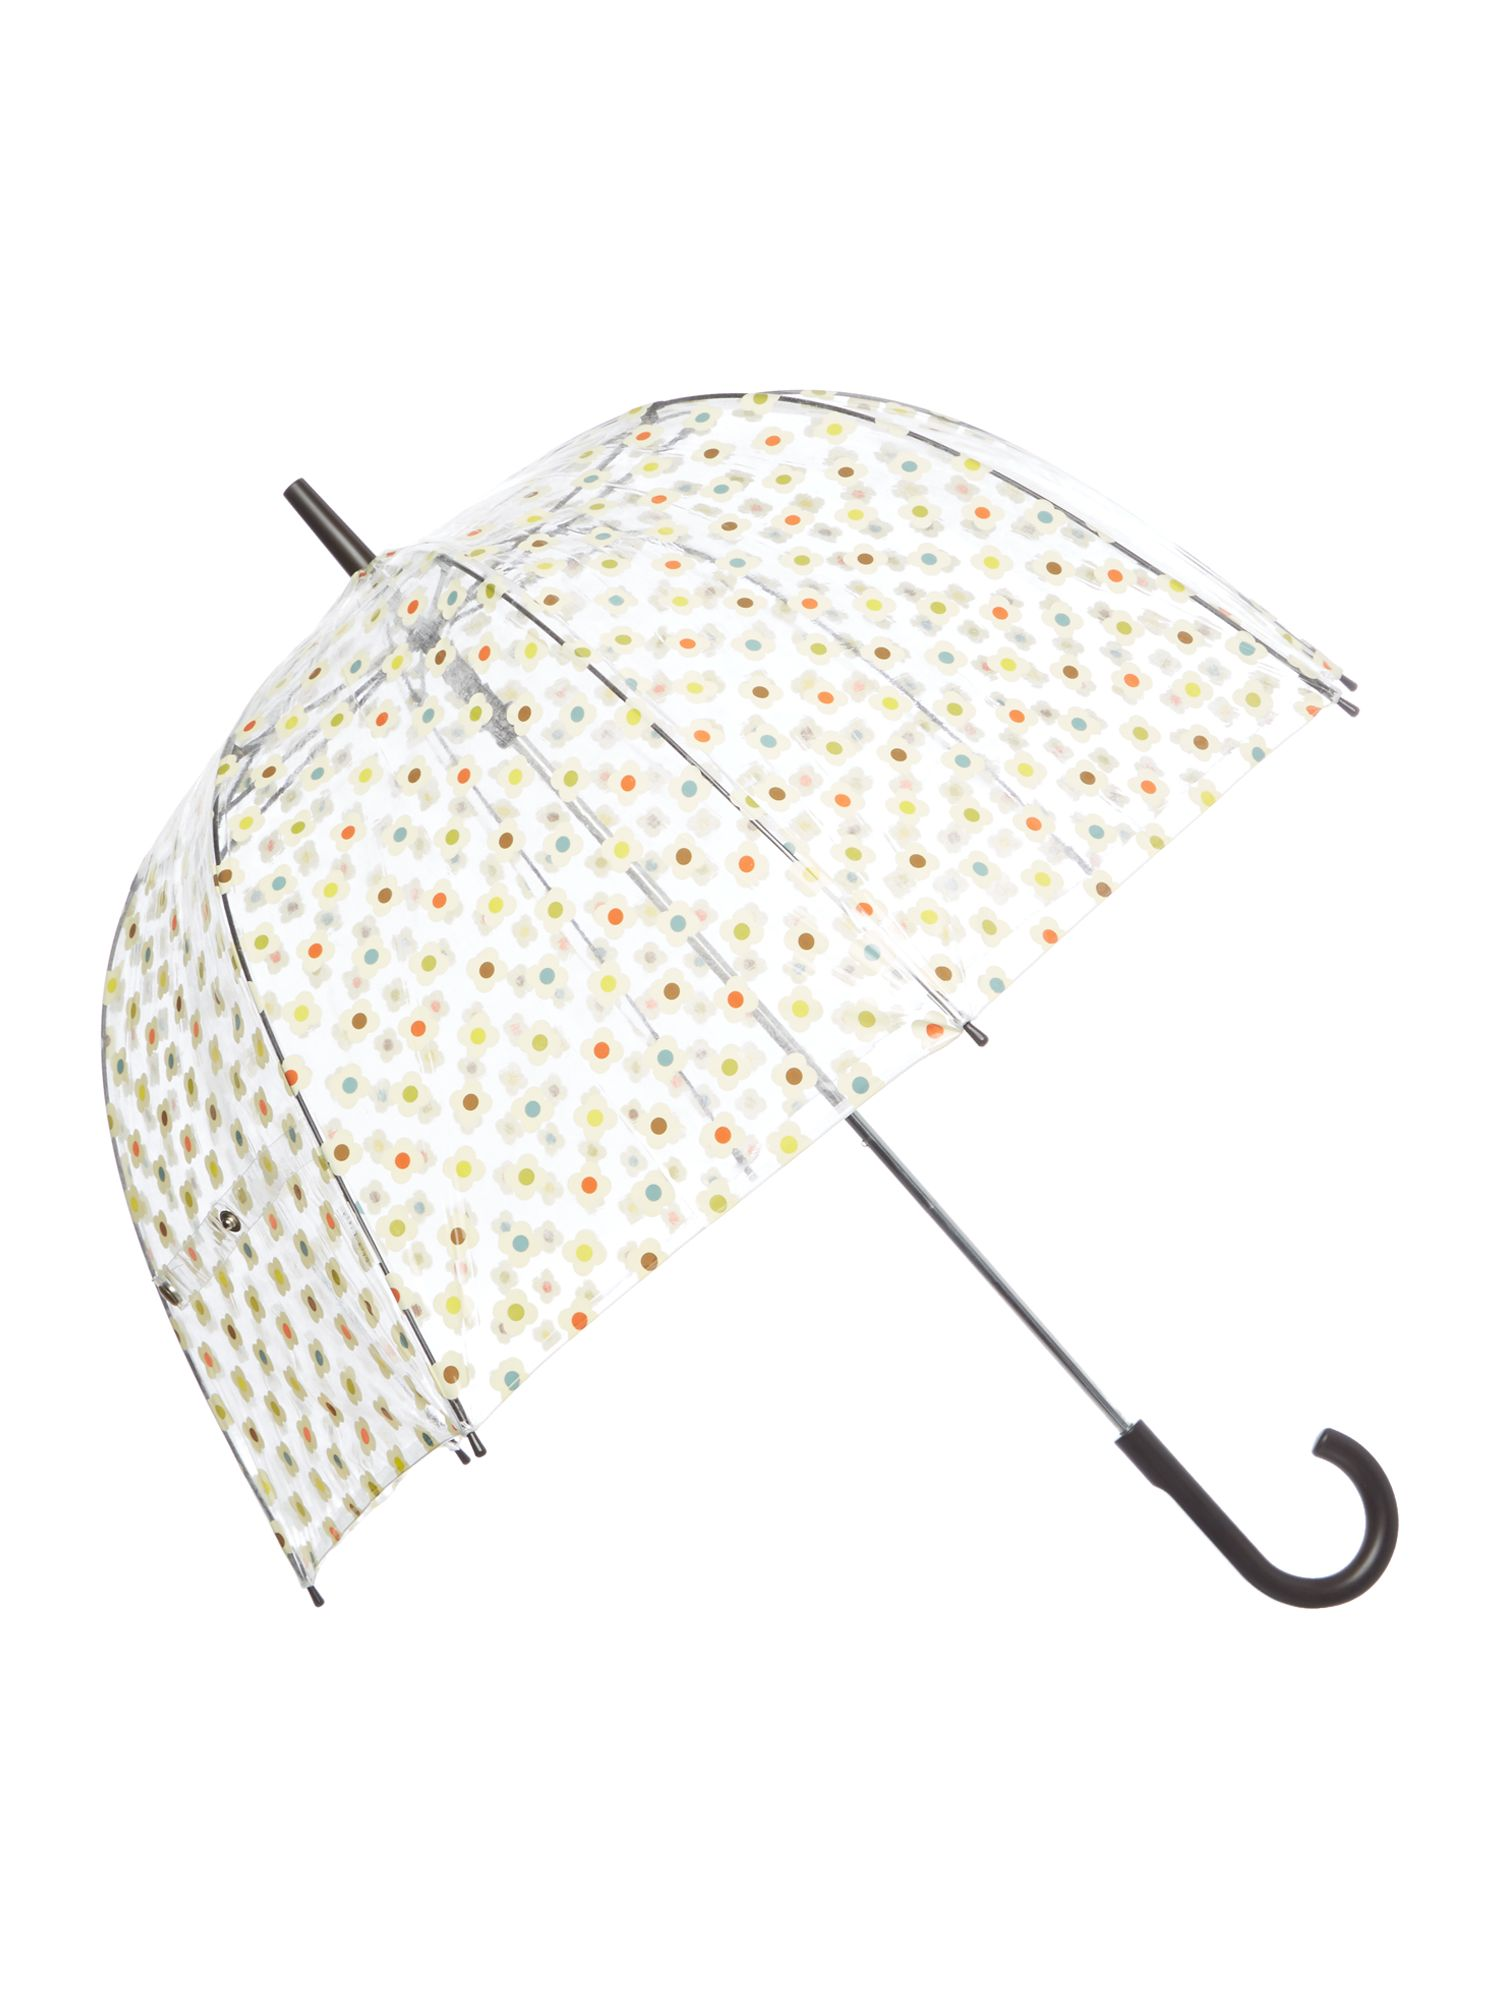 Vintage Style Parasols and Umbrellas Fulton Orla Kiely Floral Print Birdcage Umbrella £33.00 AT vintagedancer.com